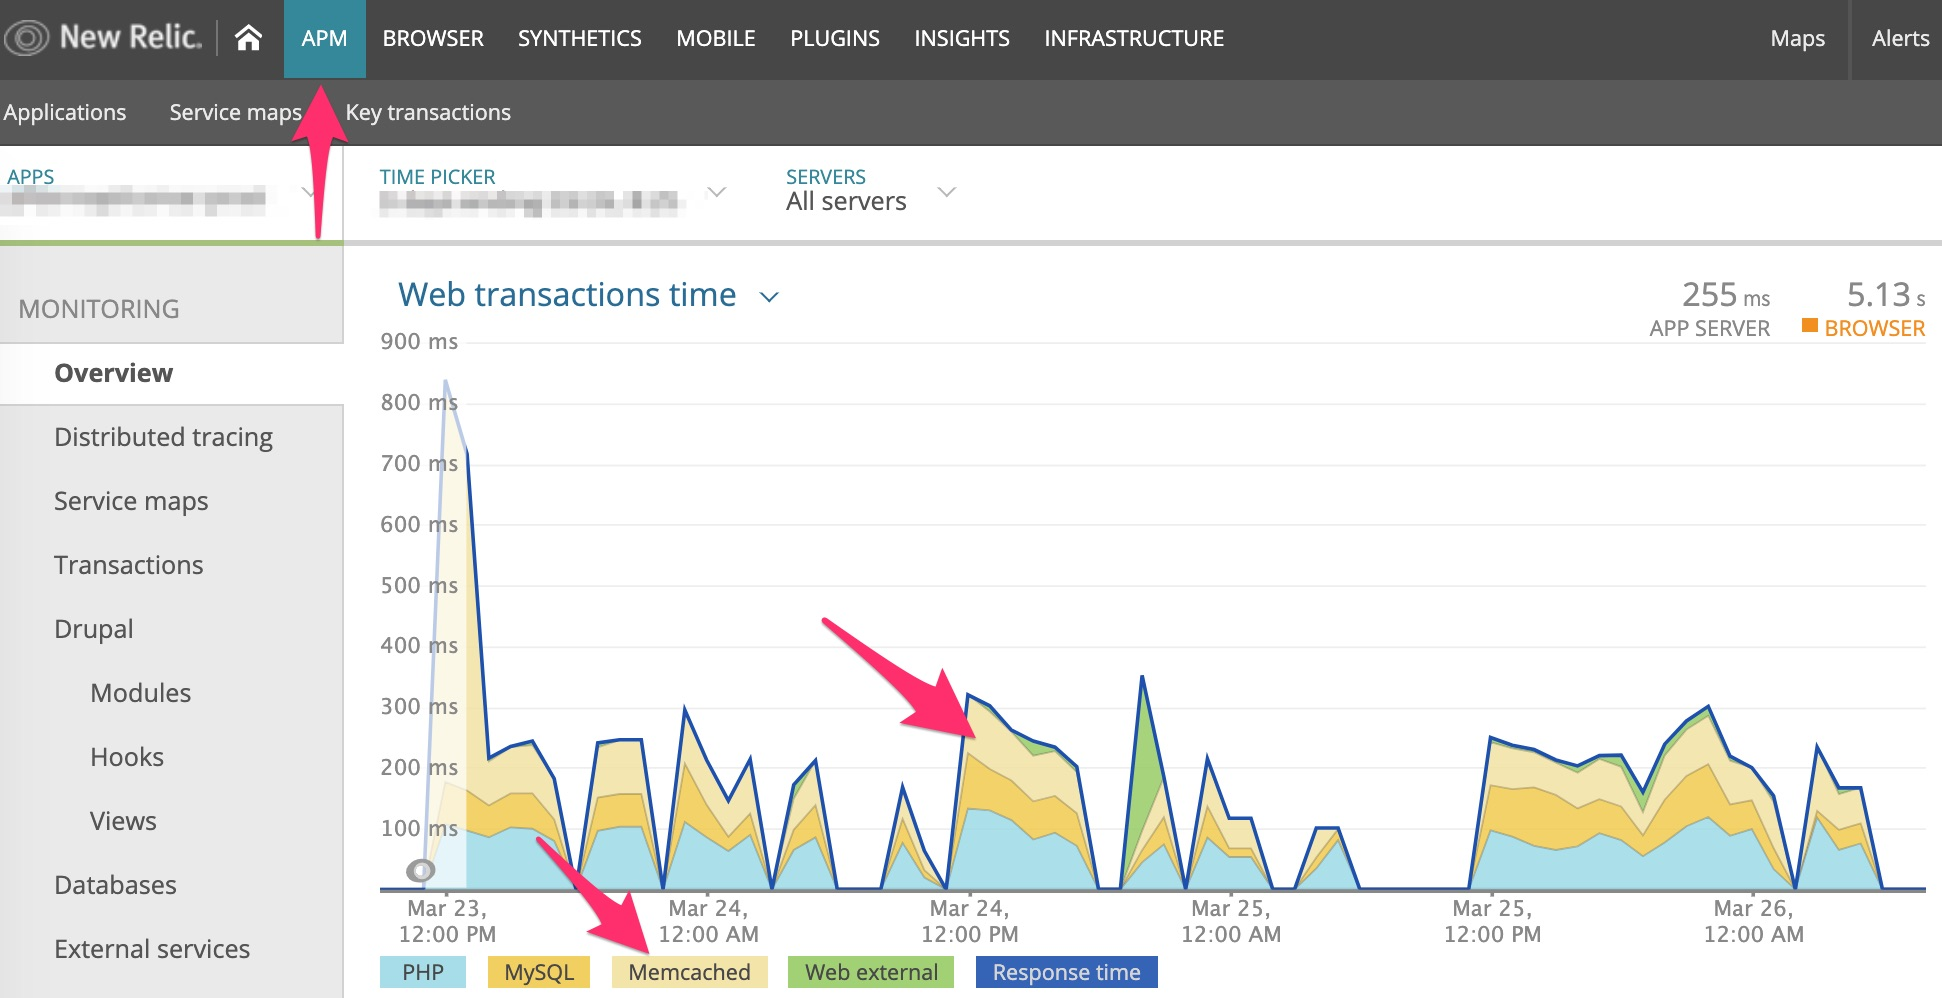 New Relic Memcache overview